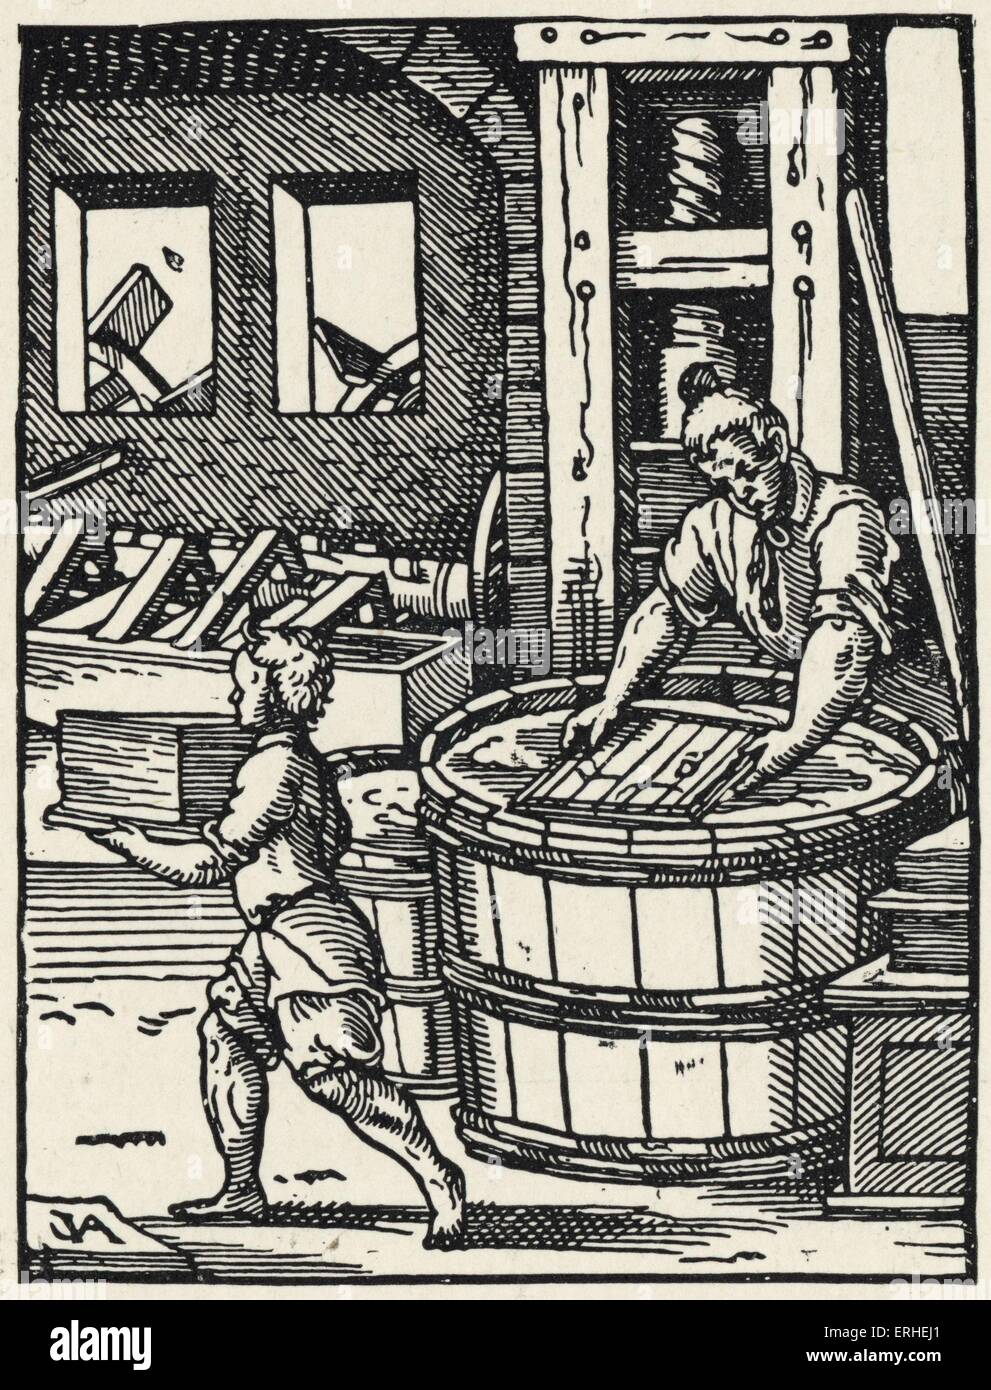 Paper making in the 15th century - illustration from 'Stunde und Handwerker' by Jobst Amman. Early book - Stock Image